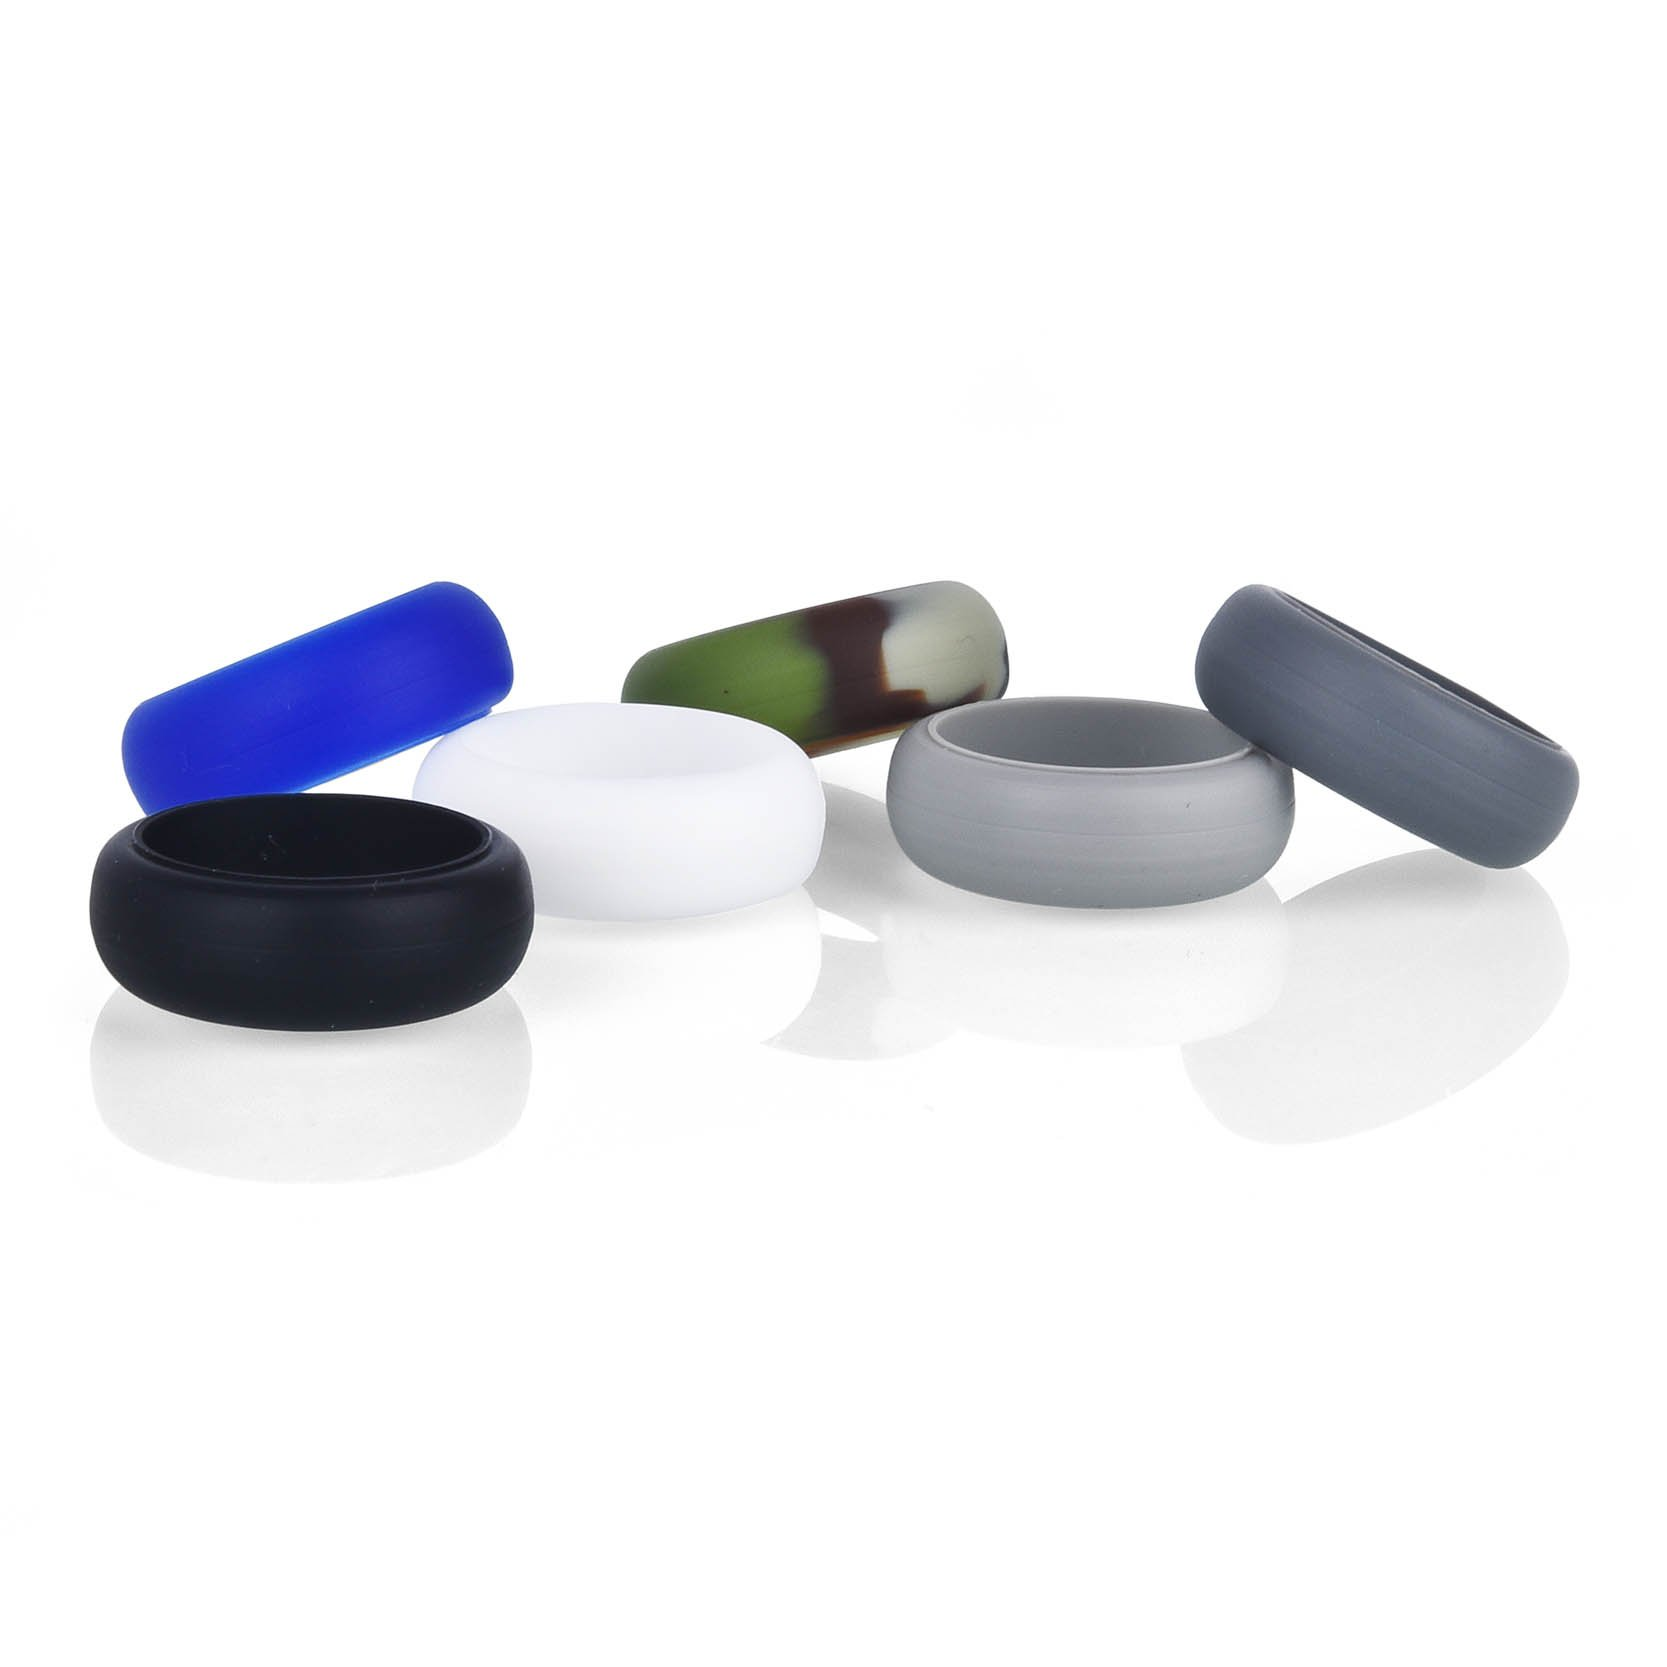 OBSEDE Women Men Vogue Wedding Silicone Ring Smooth Comfort Band Ring Set 6 Pack Size 10 by OBSEDE (Image #3)